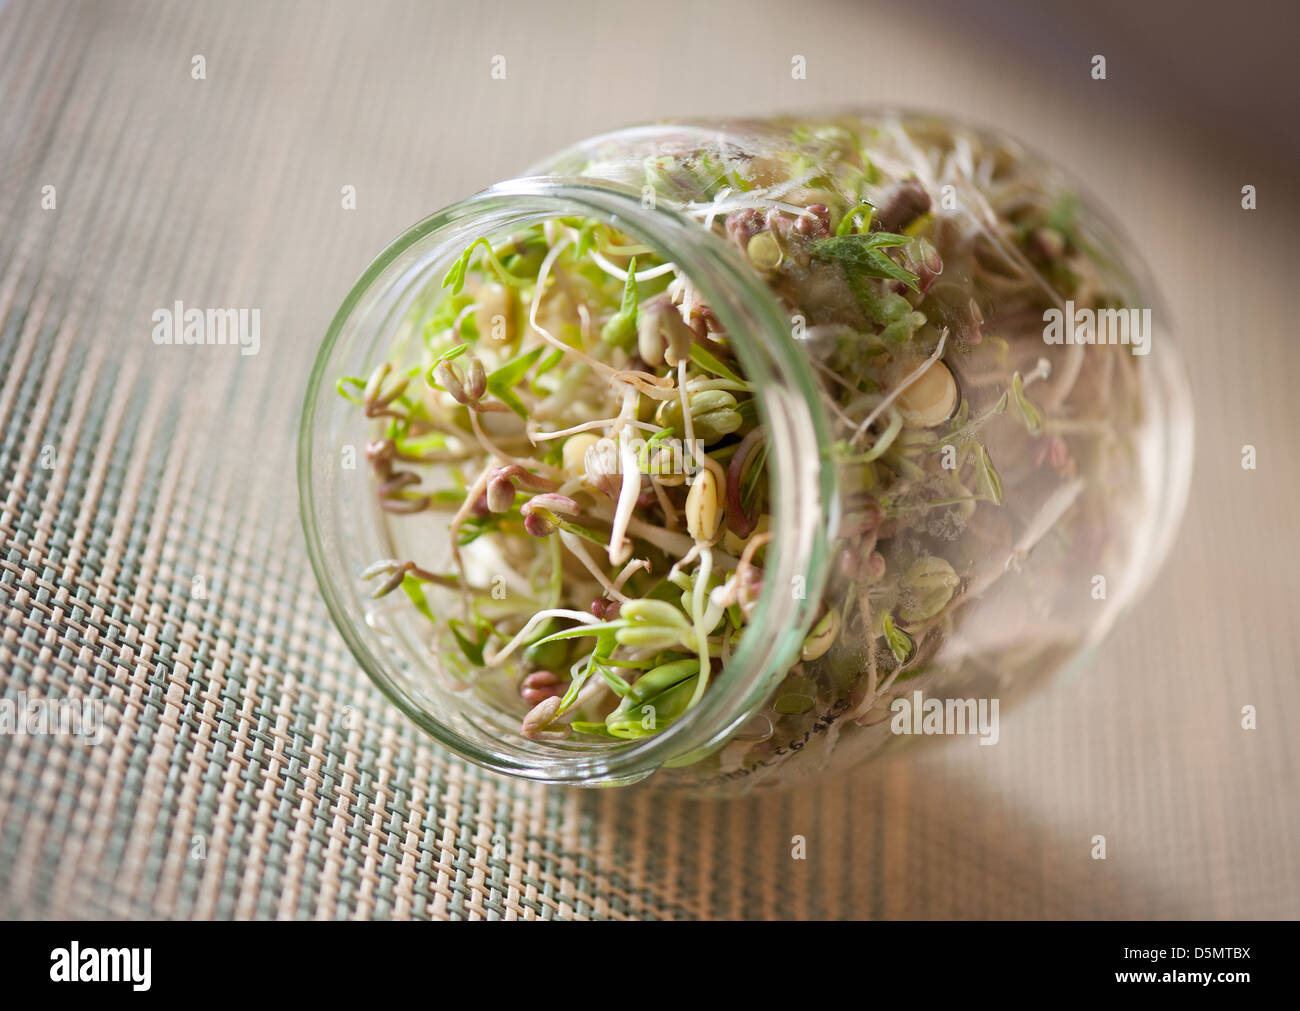 Mix of cereal shoots growing in glass jar - Stock Image